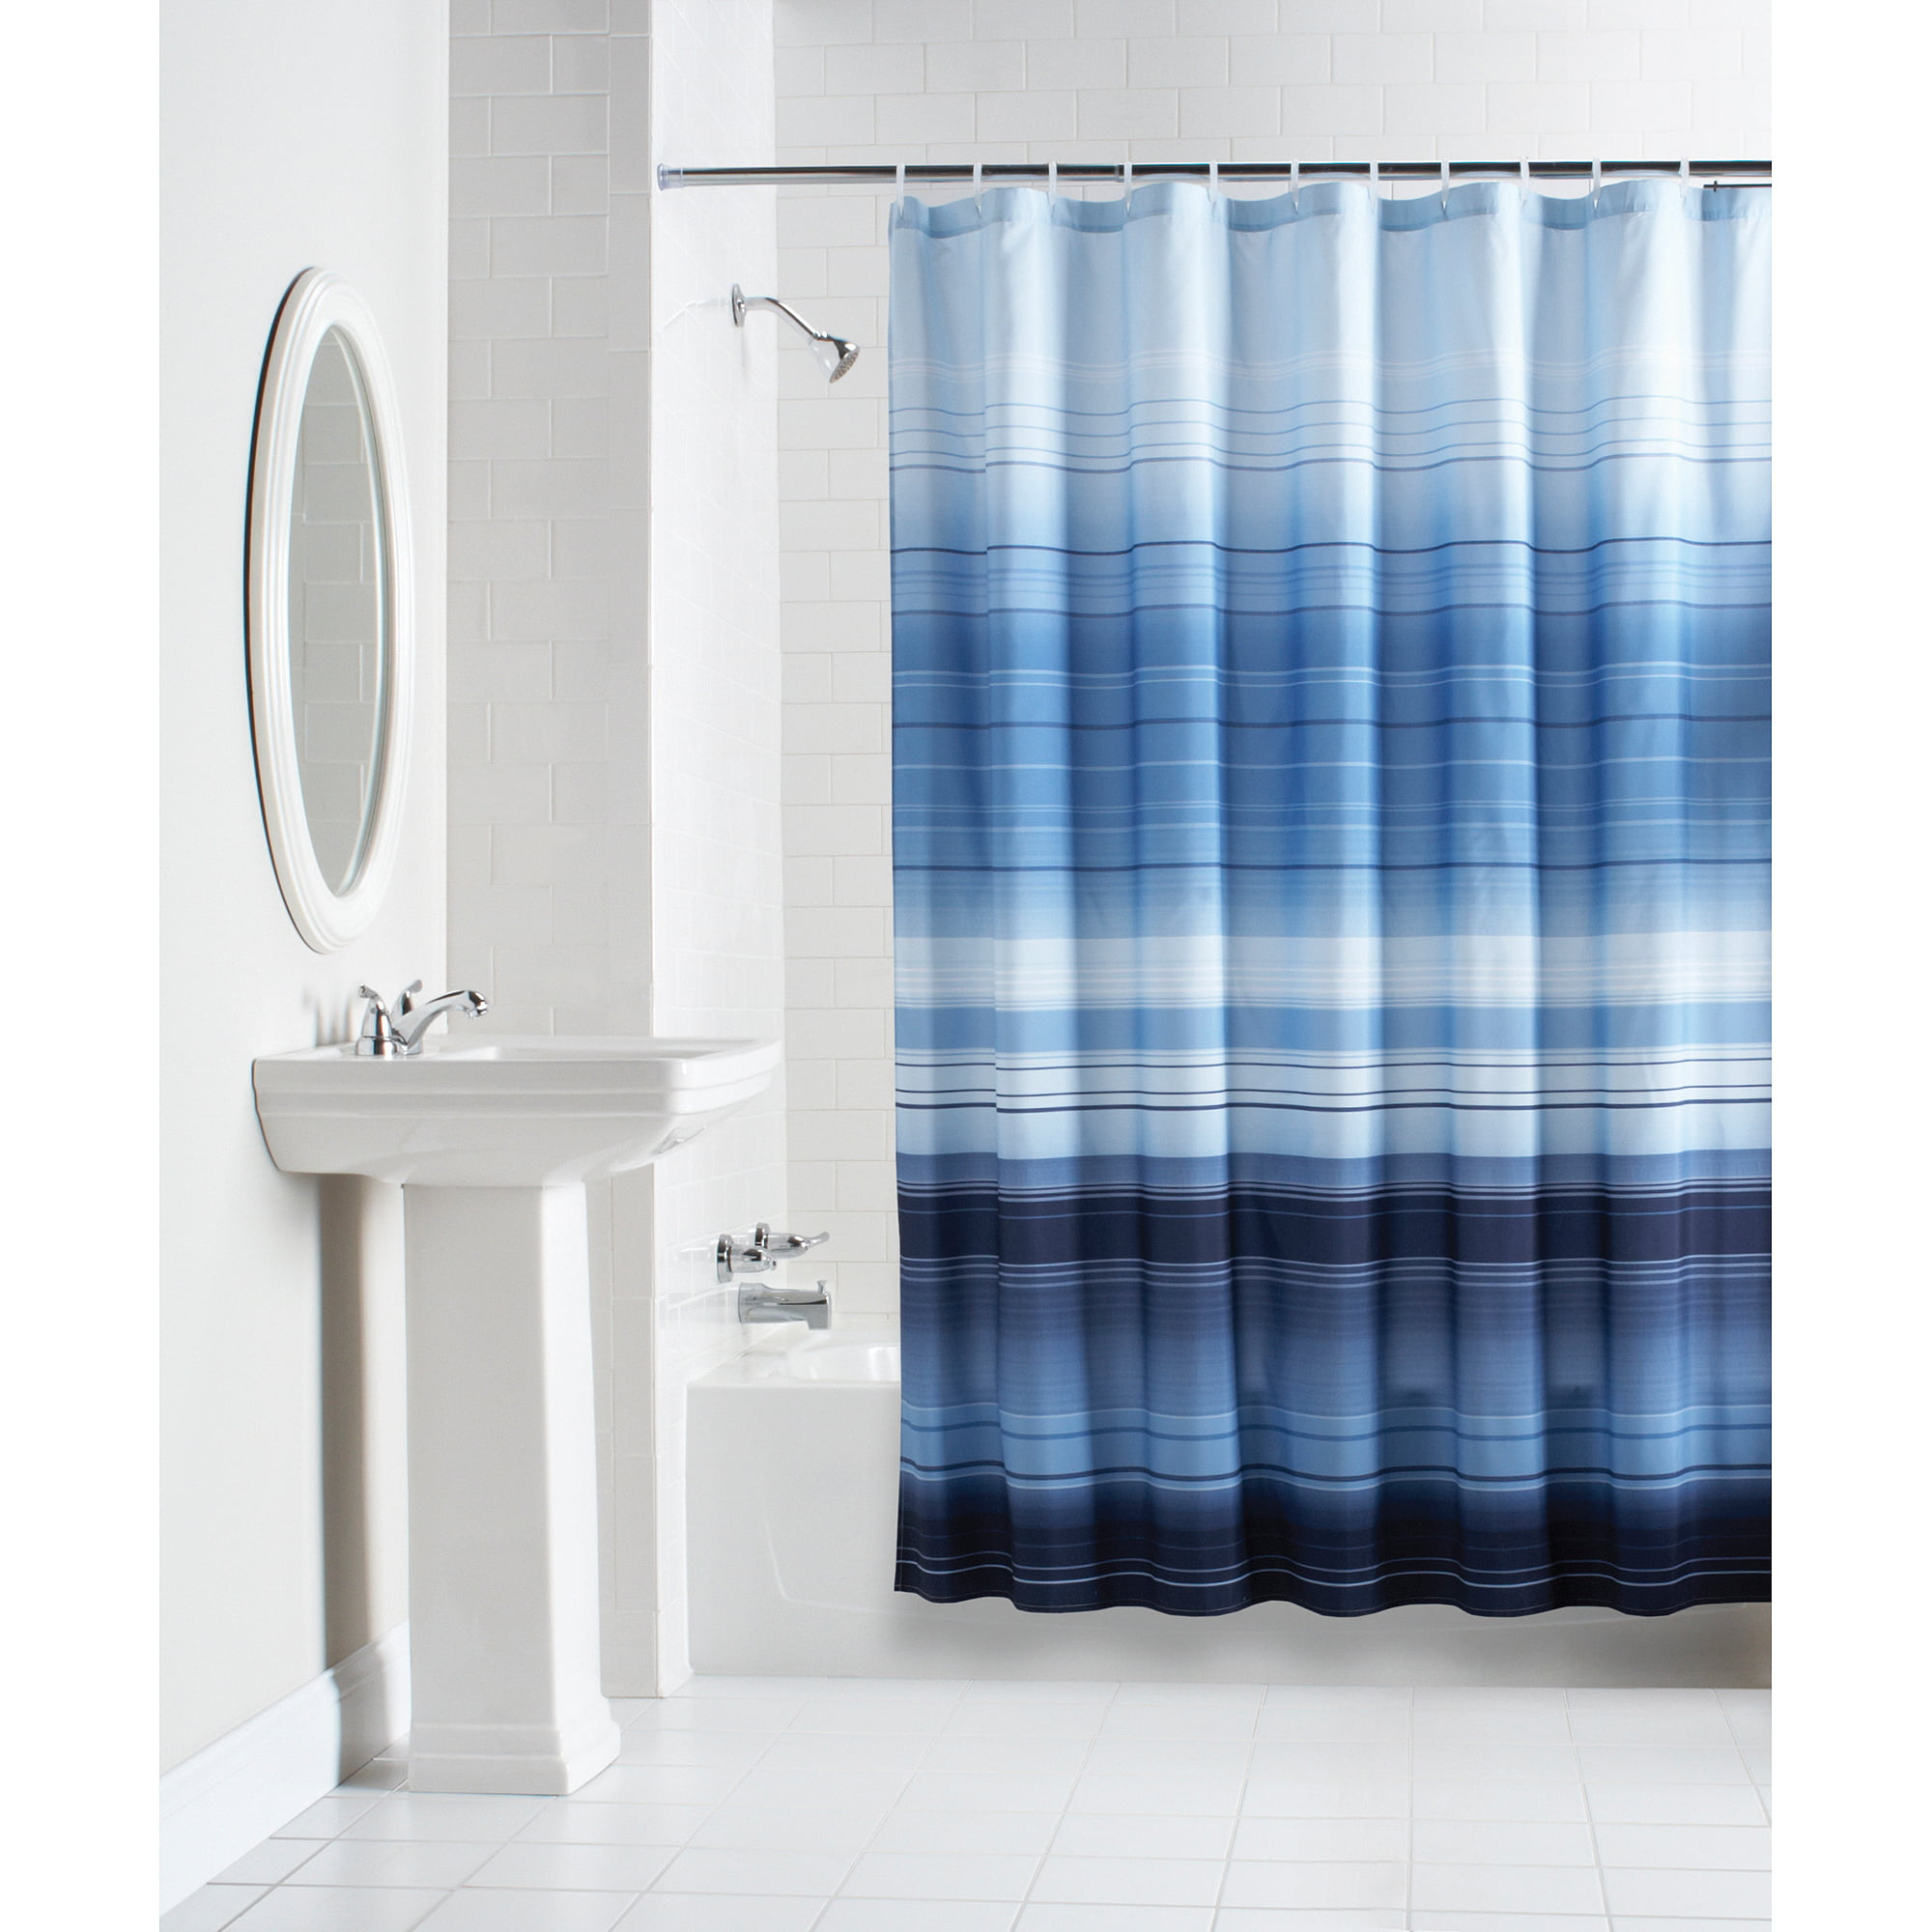 Blue bathroom curtains - Mainstays Ombre Stripe Fabric Shower Curtain Blue Shower Curtains